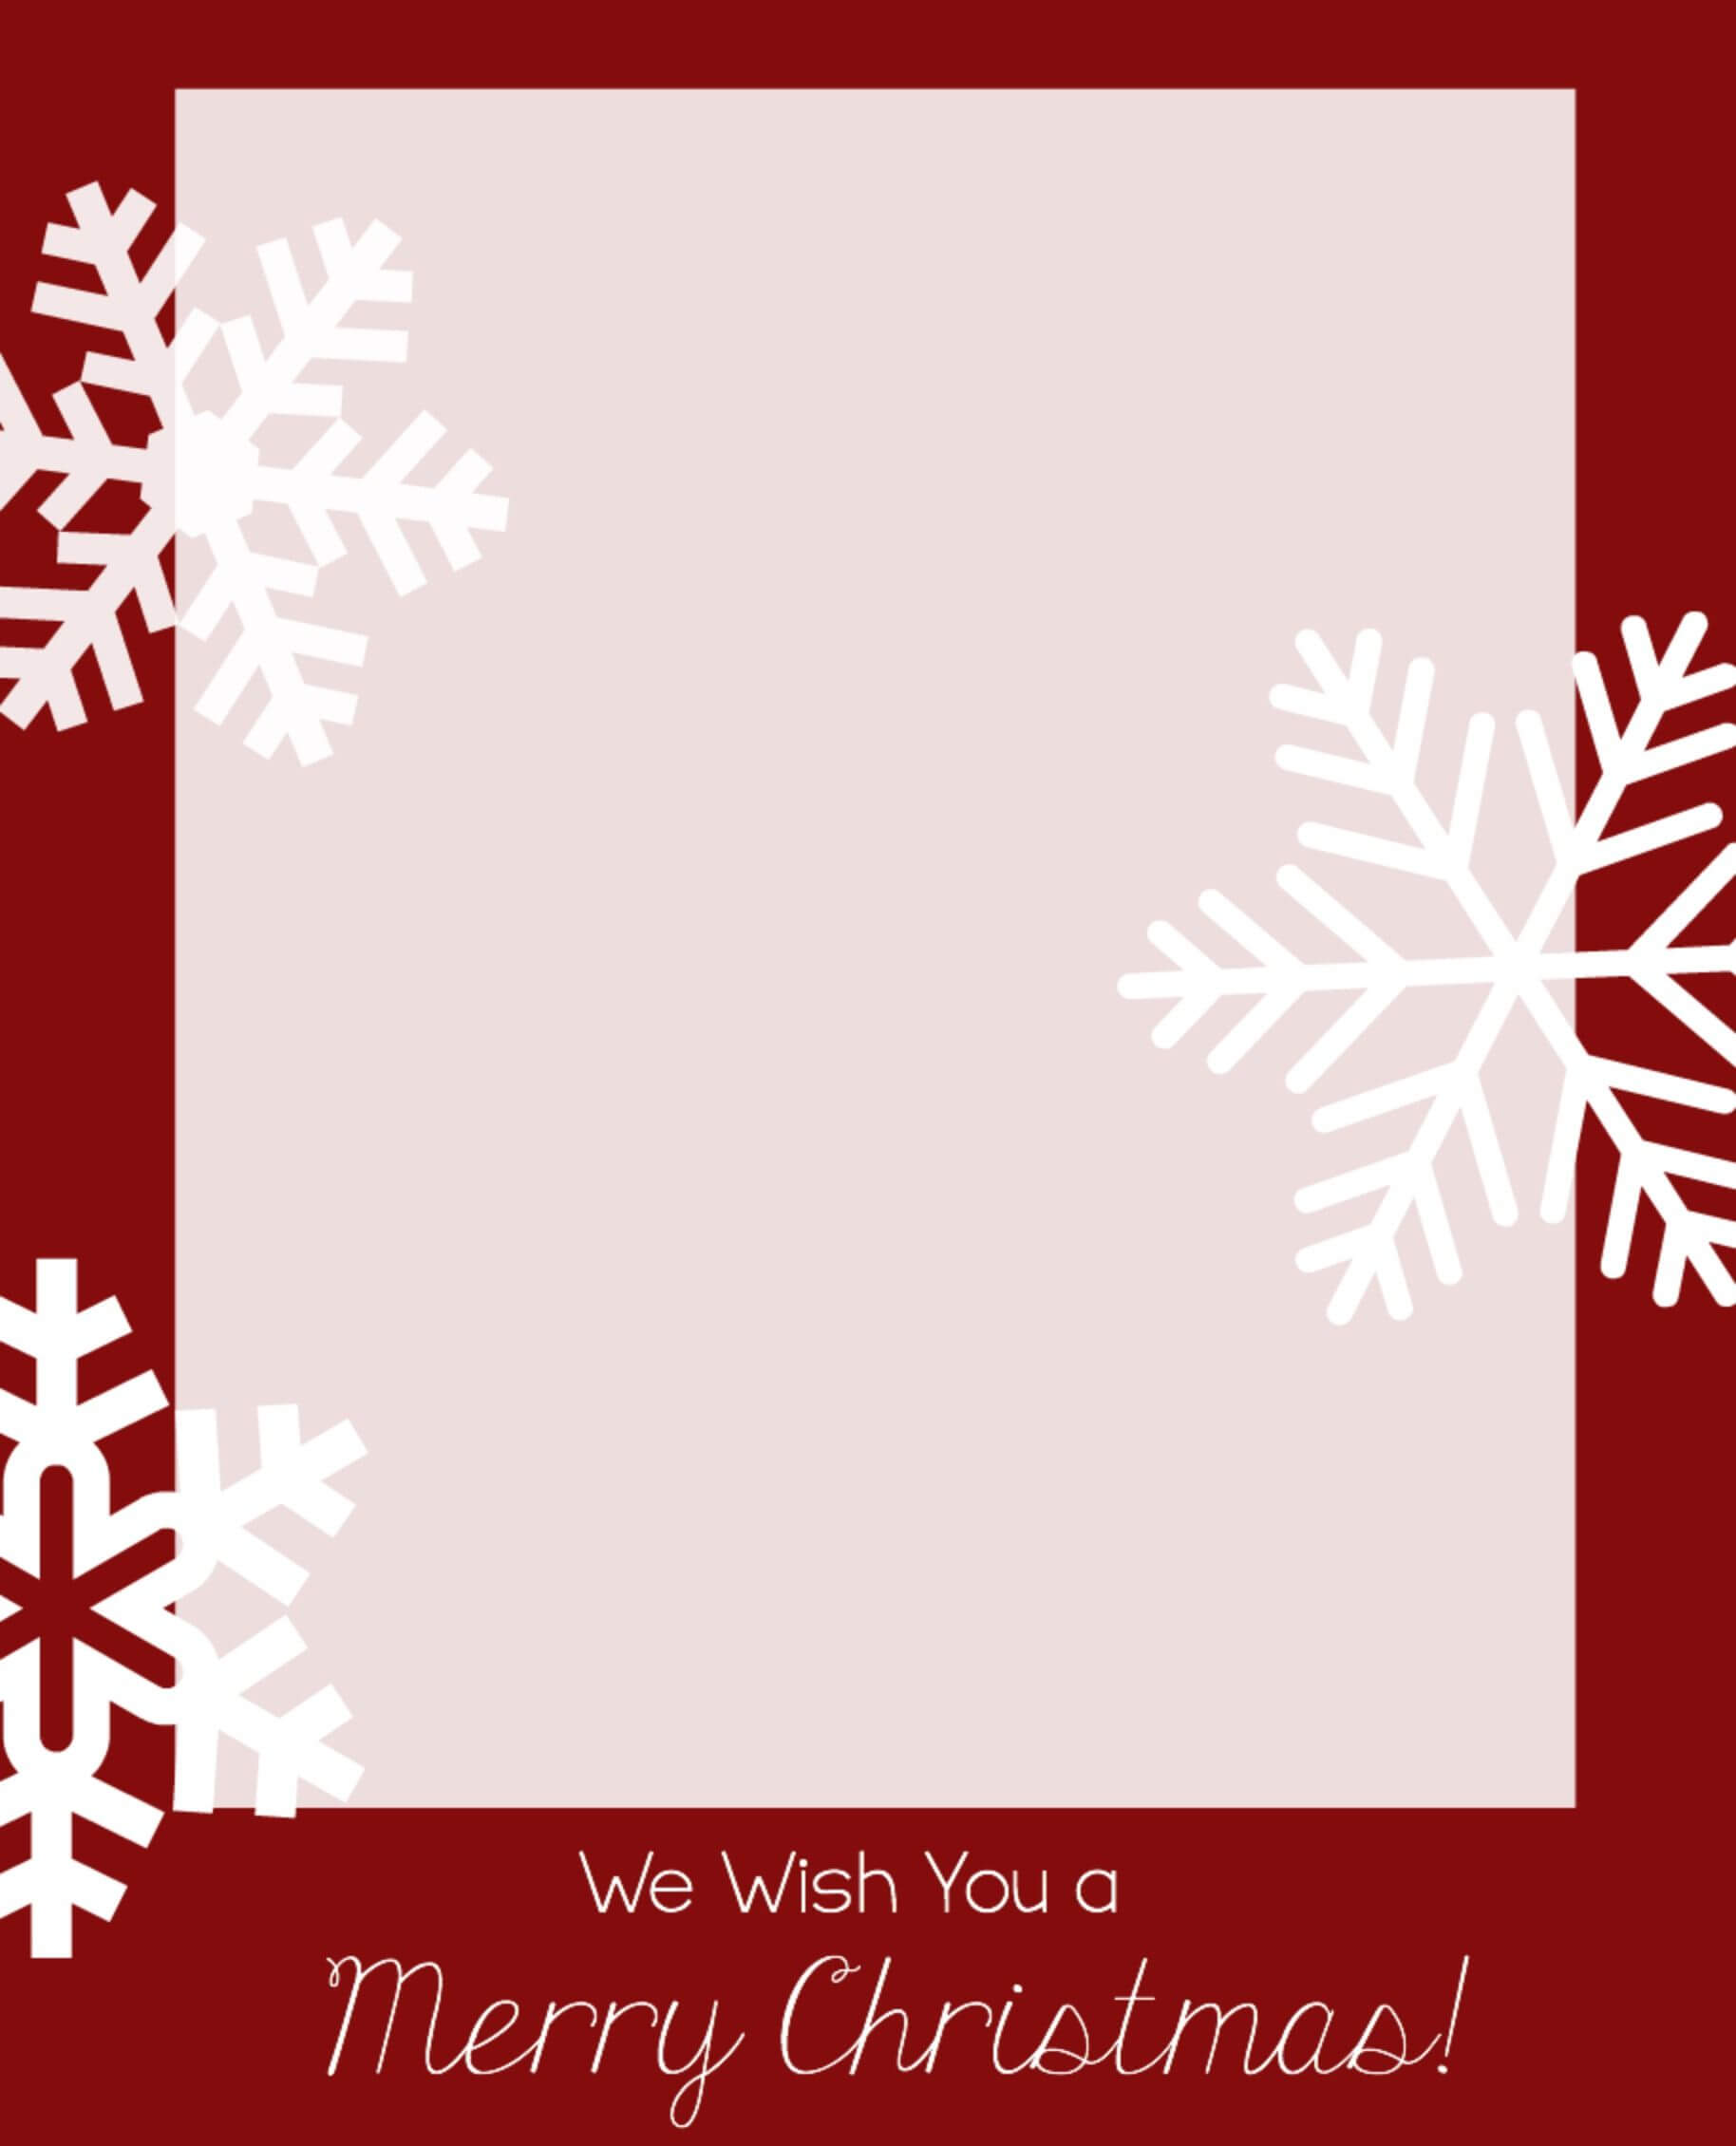 Free Christmas Card Templates | Christmas Card Template Pertaining To Free Holiday Photo Card Templates